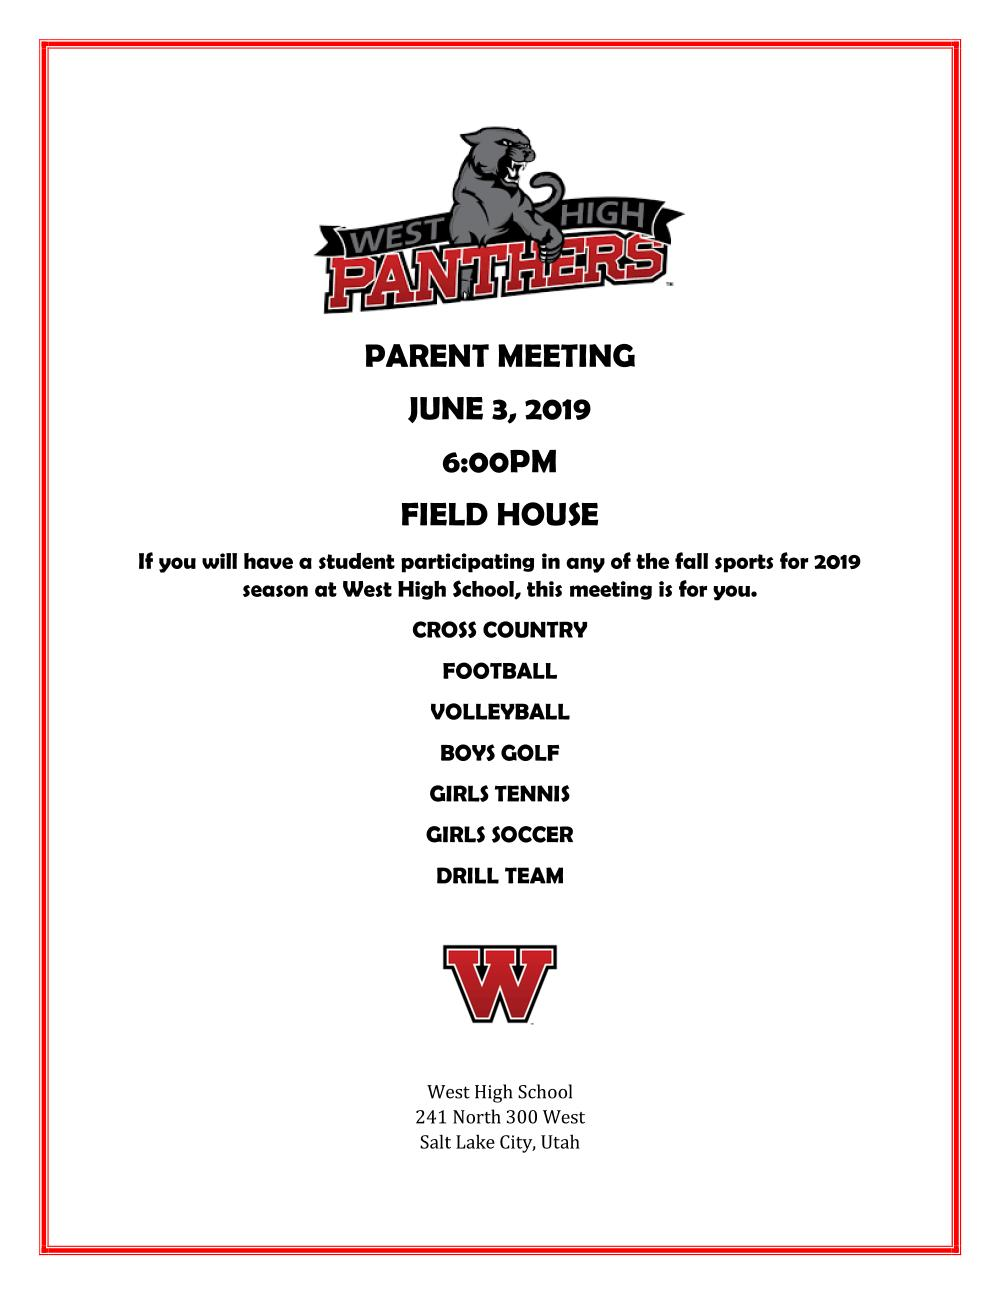 PARENT MEETING for all 2019 FALL SPORTS athletes, June 3rd